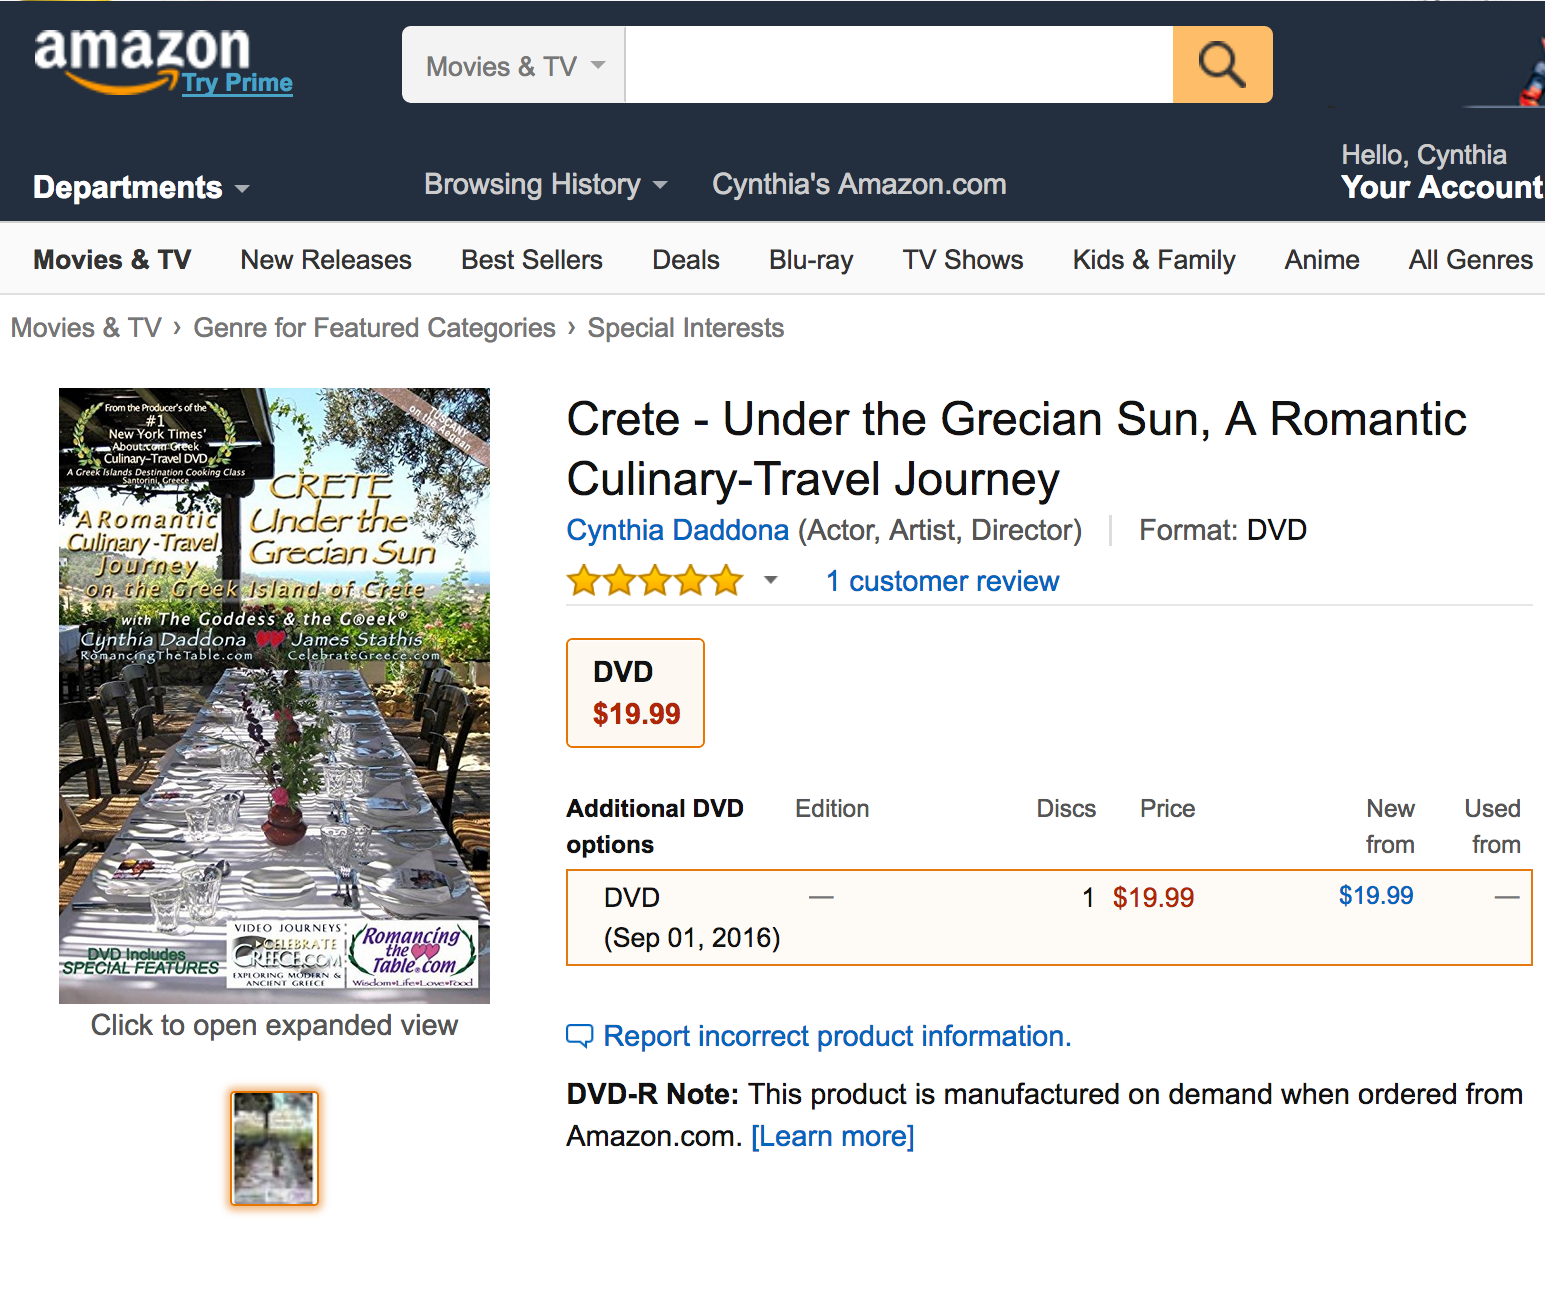 Crete Under the Grecian Sun receives 5-Star rating at Amazon.com